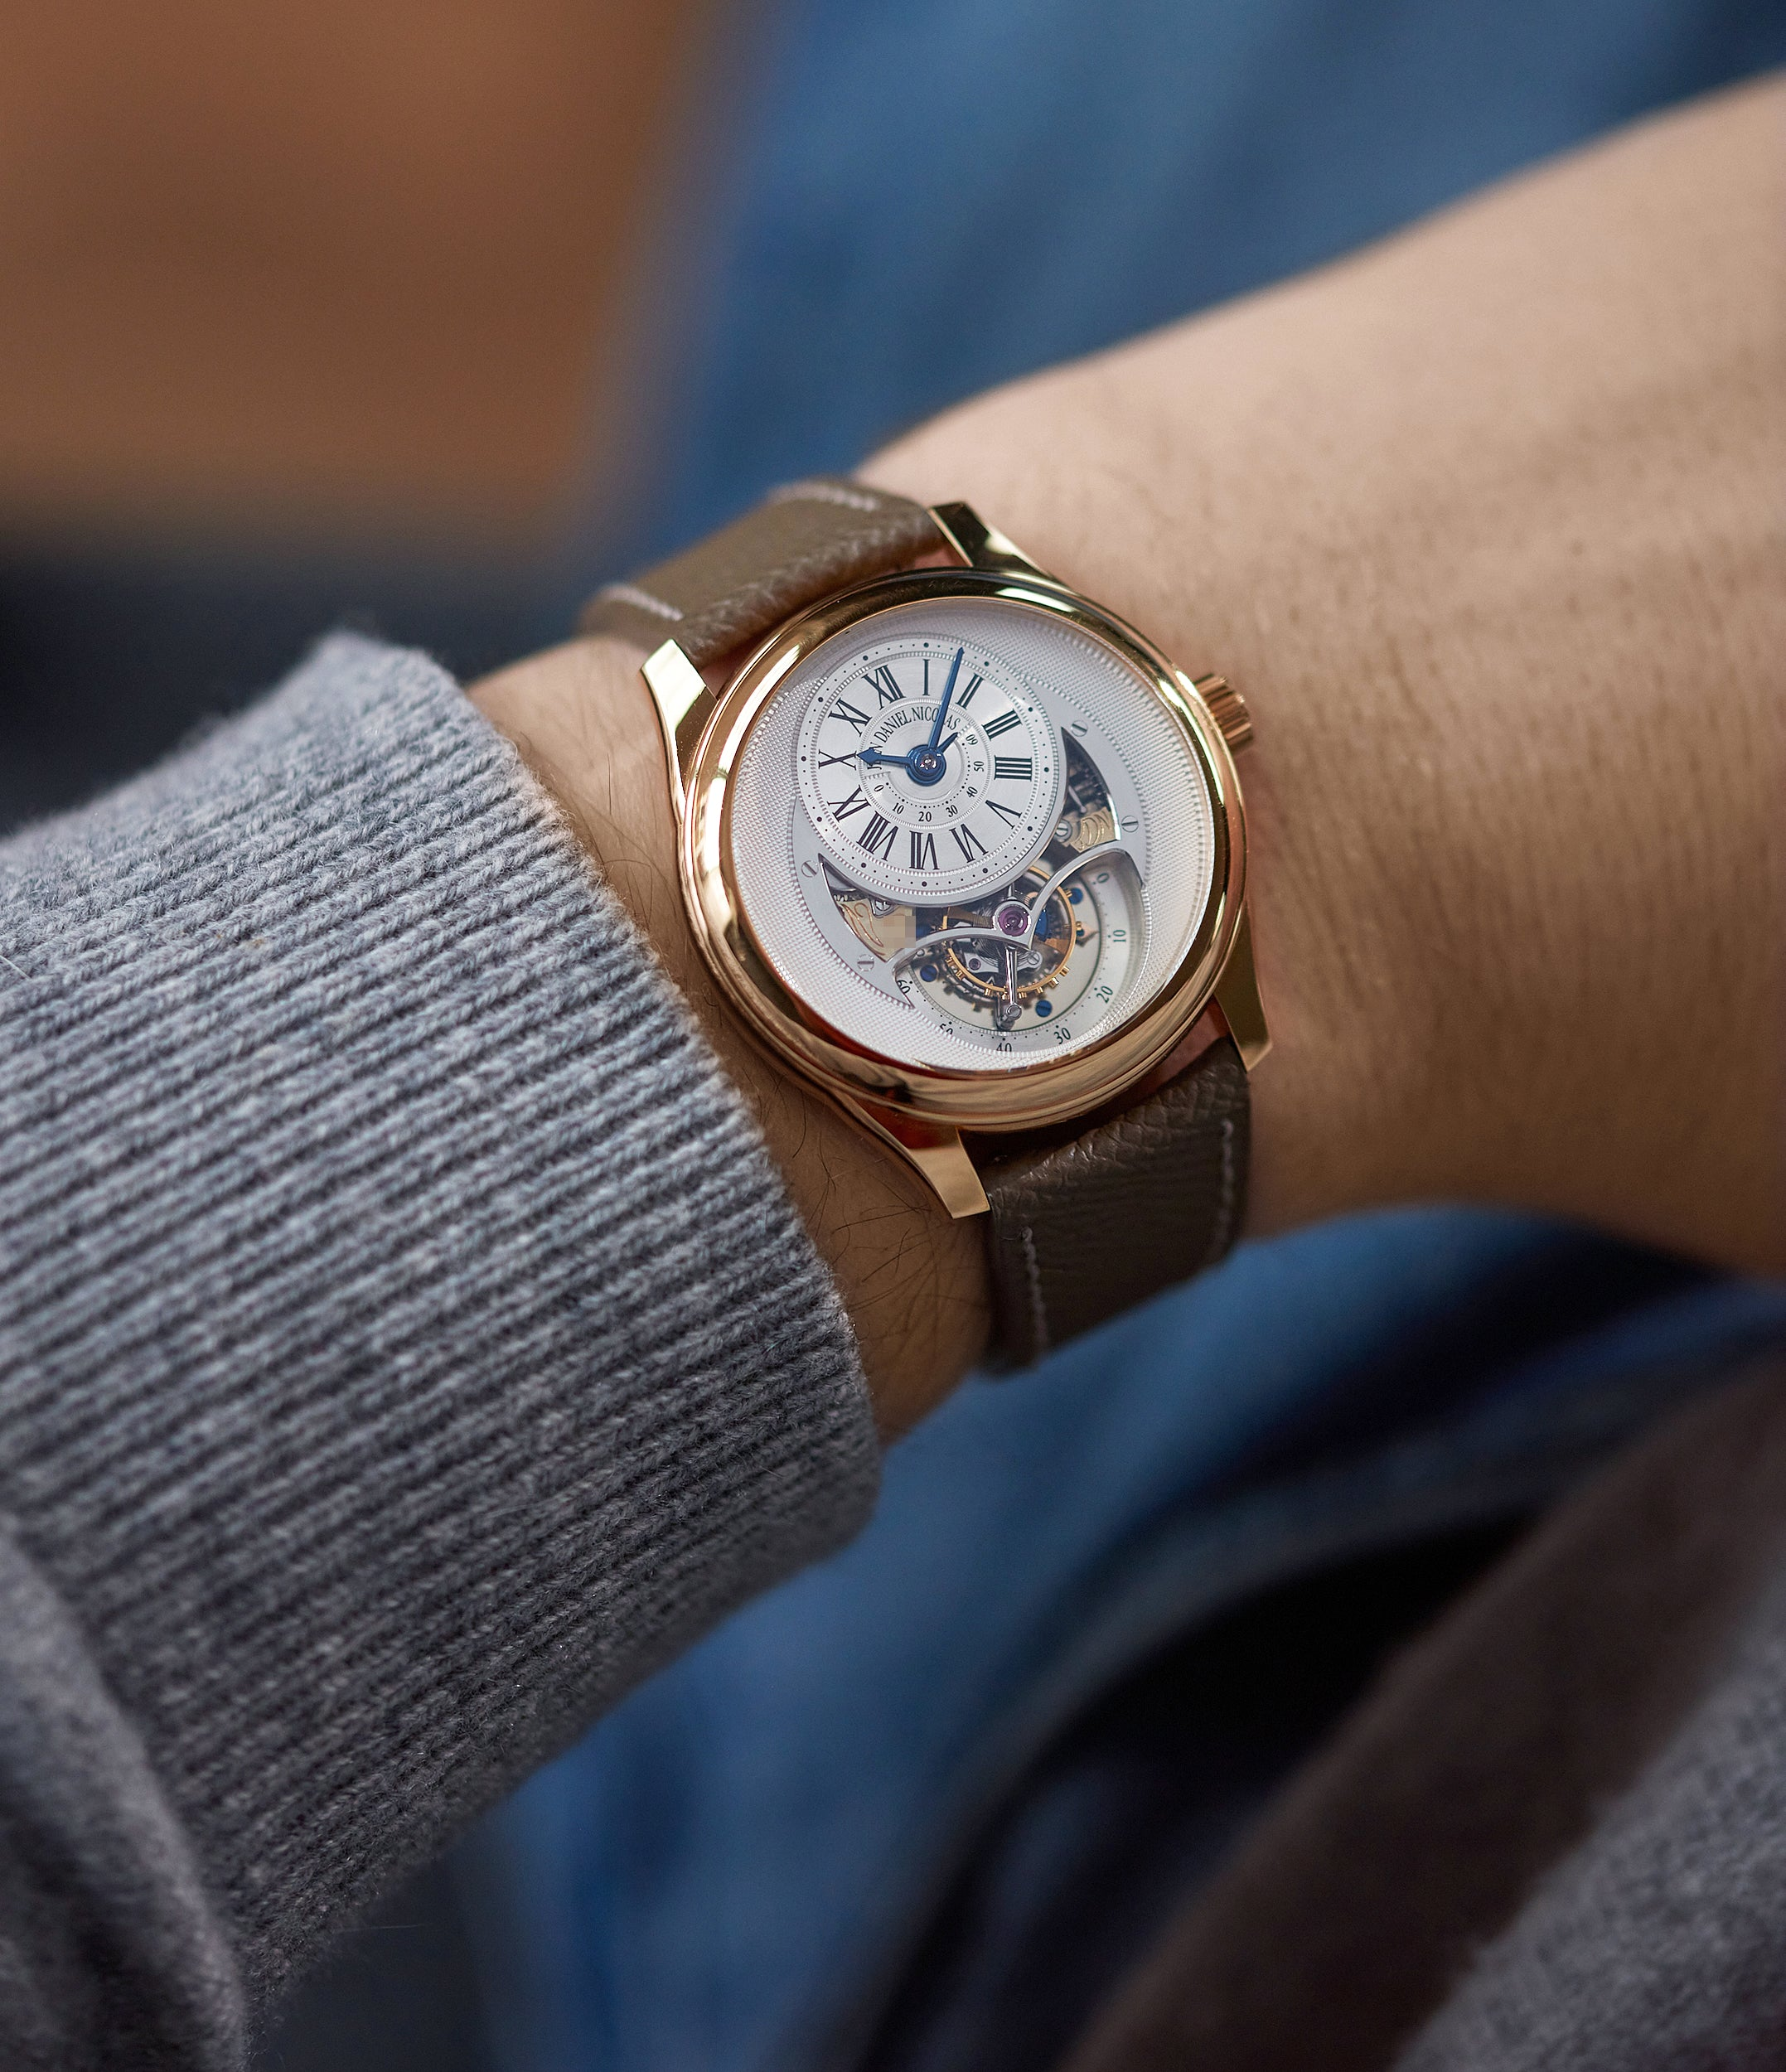 men's luxury wristwatch Jean Daniel Nicolas Two-Minute Tourbillon by independent watchmaker Daniel Roth rose gold pre-owned rare watch for sale online A Collected Man London specialist of rare watches